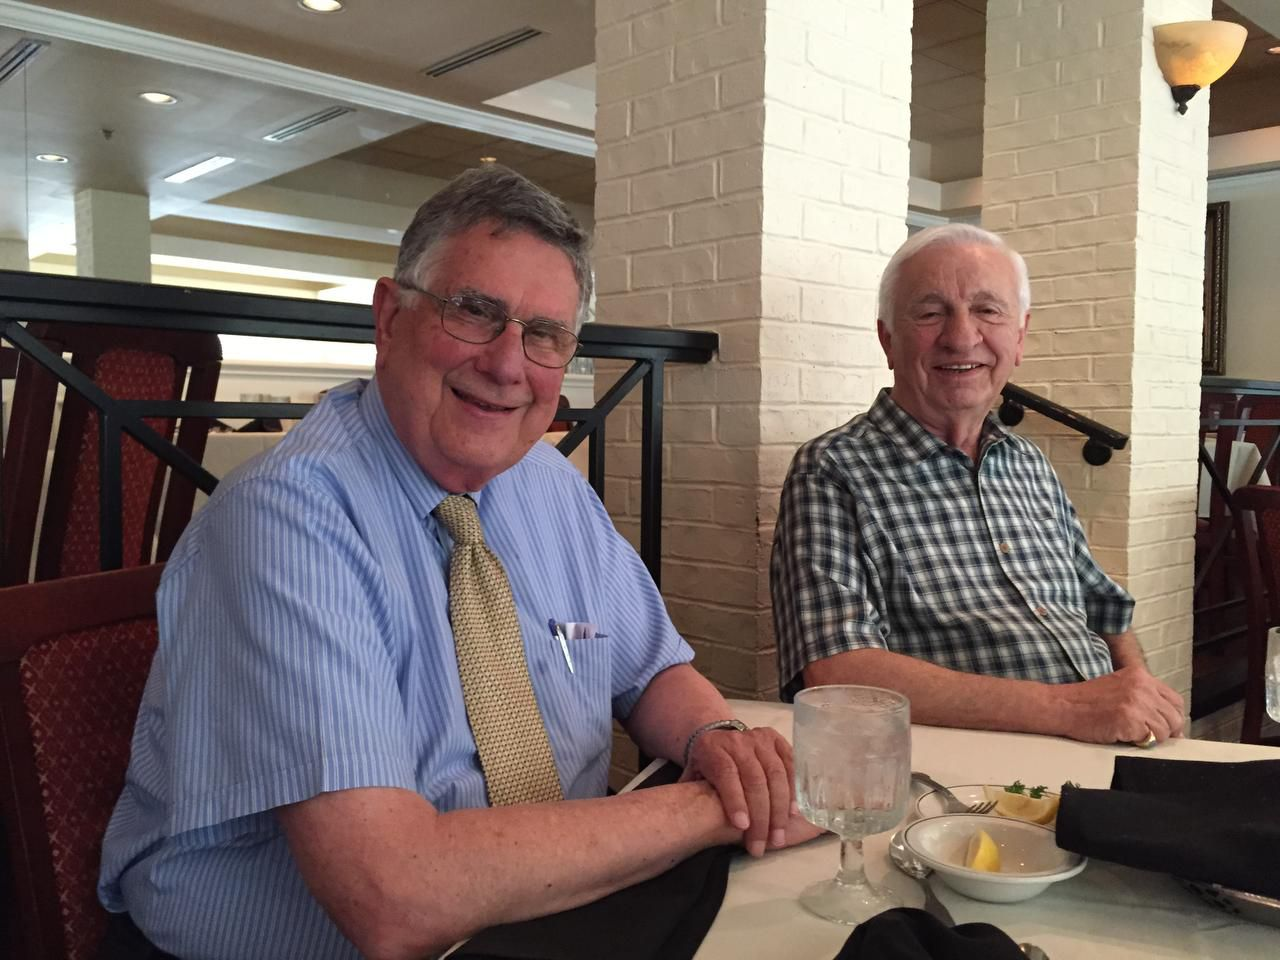 Jim Christon (left) and Angelo Stergios are shown at Vincent's Seafood in Plano on July 27.